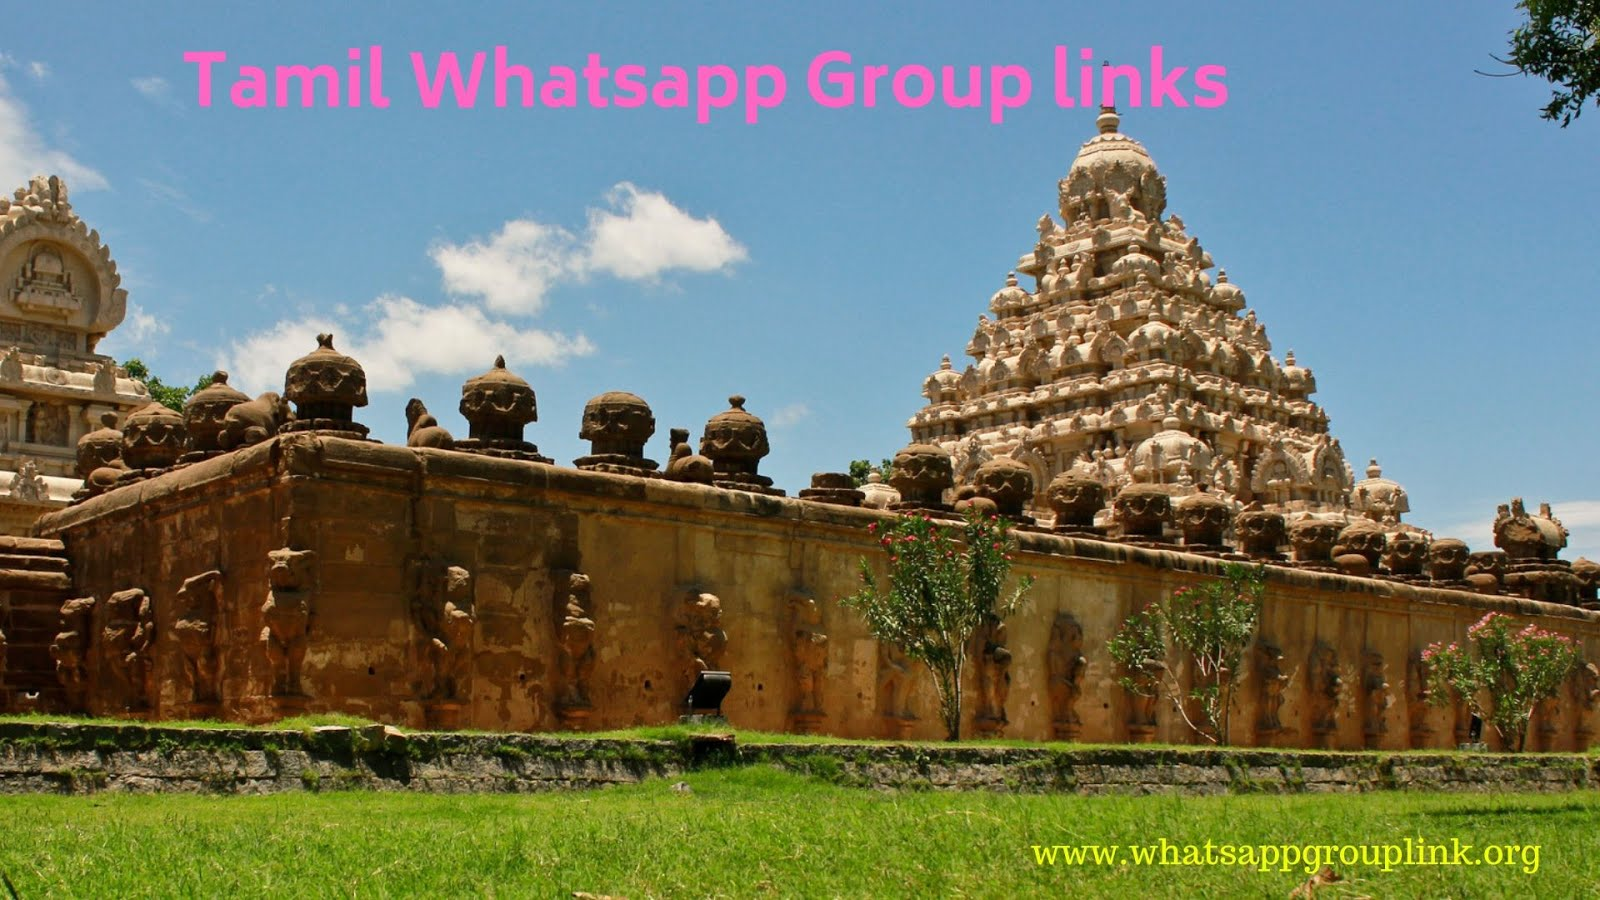 Whatsapp Group Link: Tamil Whatsapp Group Links